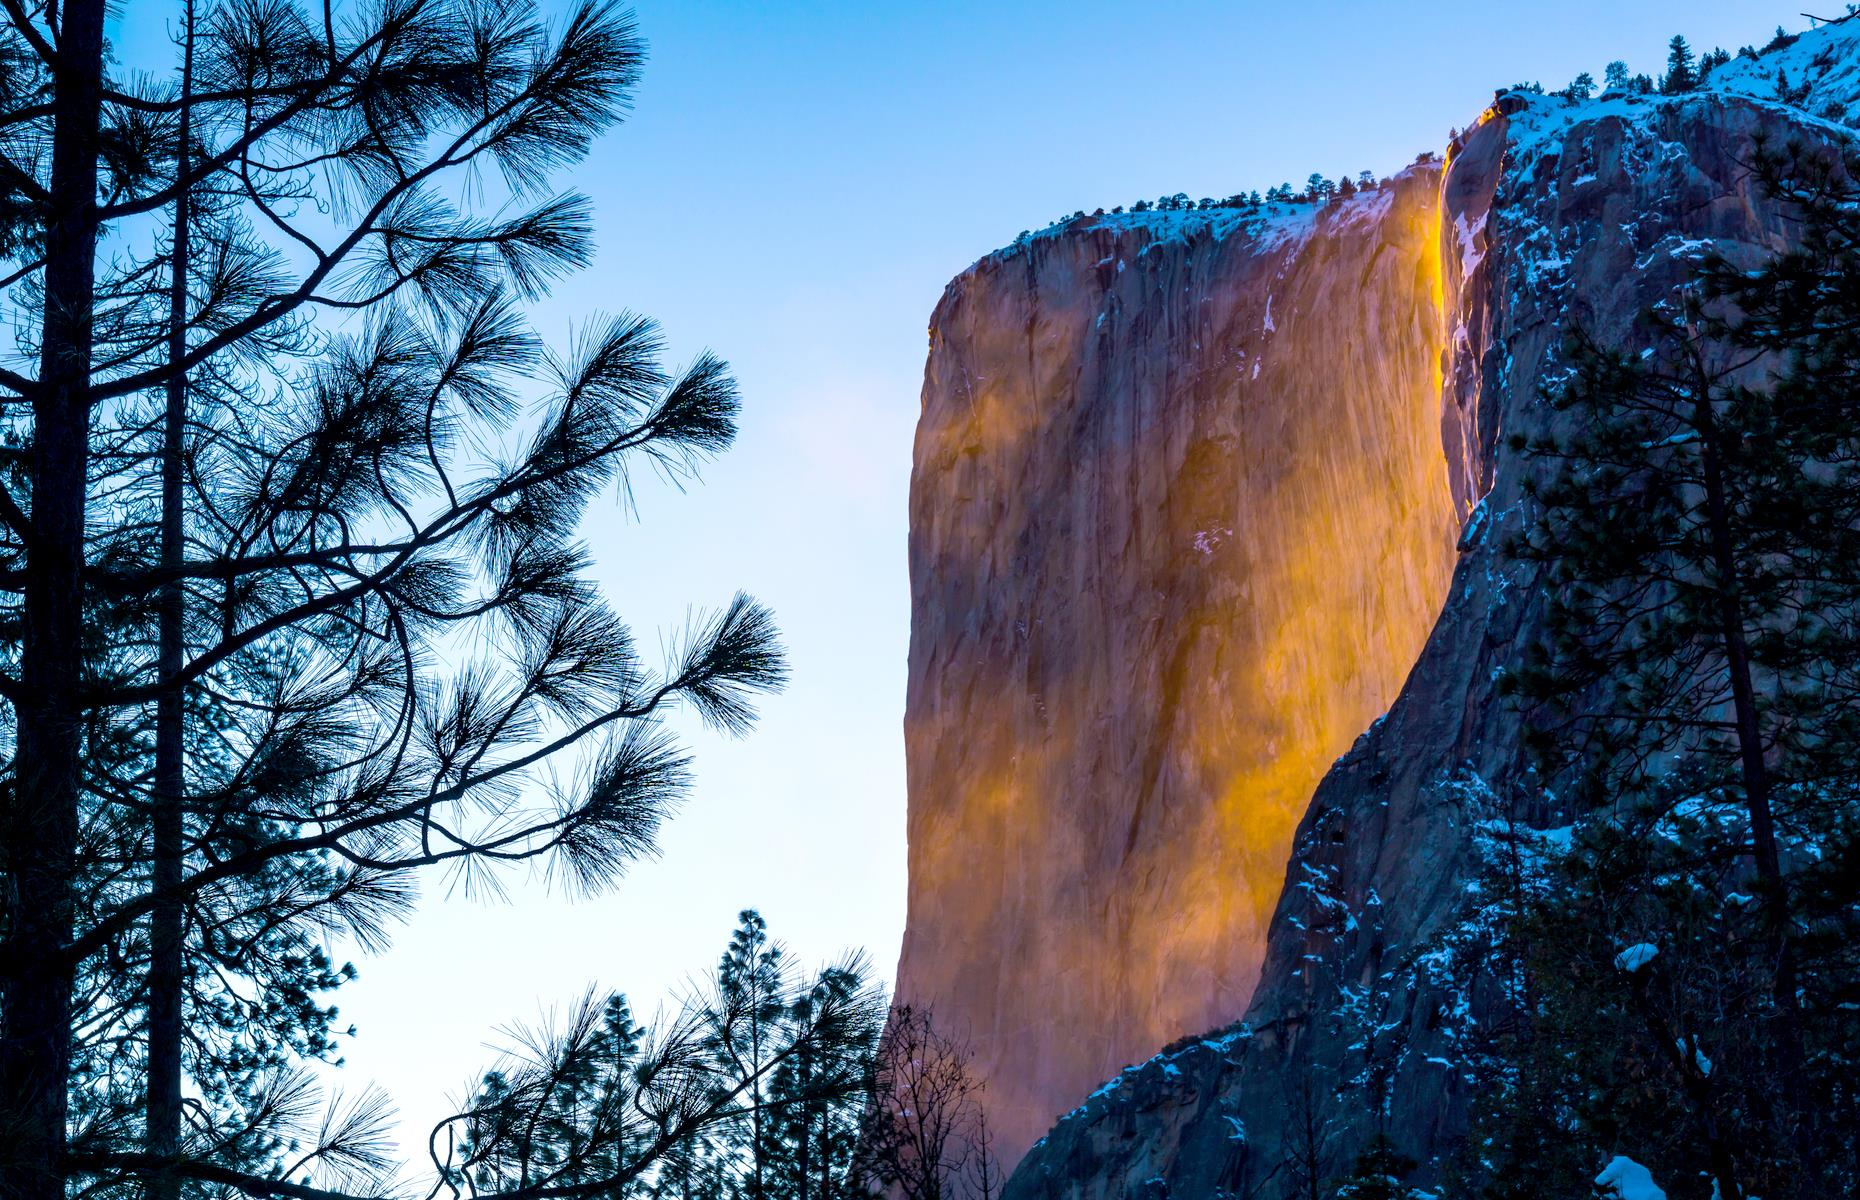 Slide 7 of 61: For much of the year, Horsetail Fall, which cascades over the eastern side of El Capitan in Yosemite National Park, looks like any other waterfall. But, come February, something magical happens. On clear nights, when the sun is setting and the light strikes right, the waterfall takes on a burning orange glow and spills over the mountain face like lava. Various hiking trails wind towards the falls, each one at least a mile (1.6km) in length. Yosemite National Park is currently open but reservations are required.